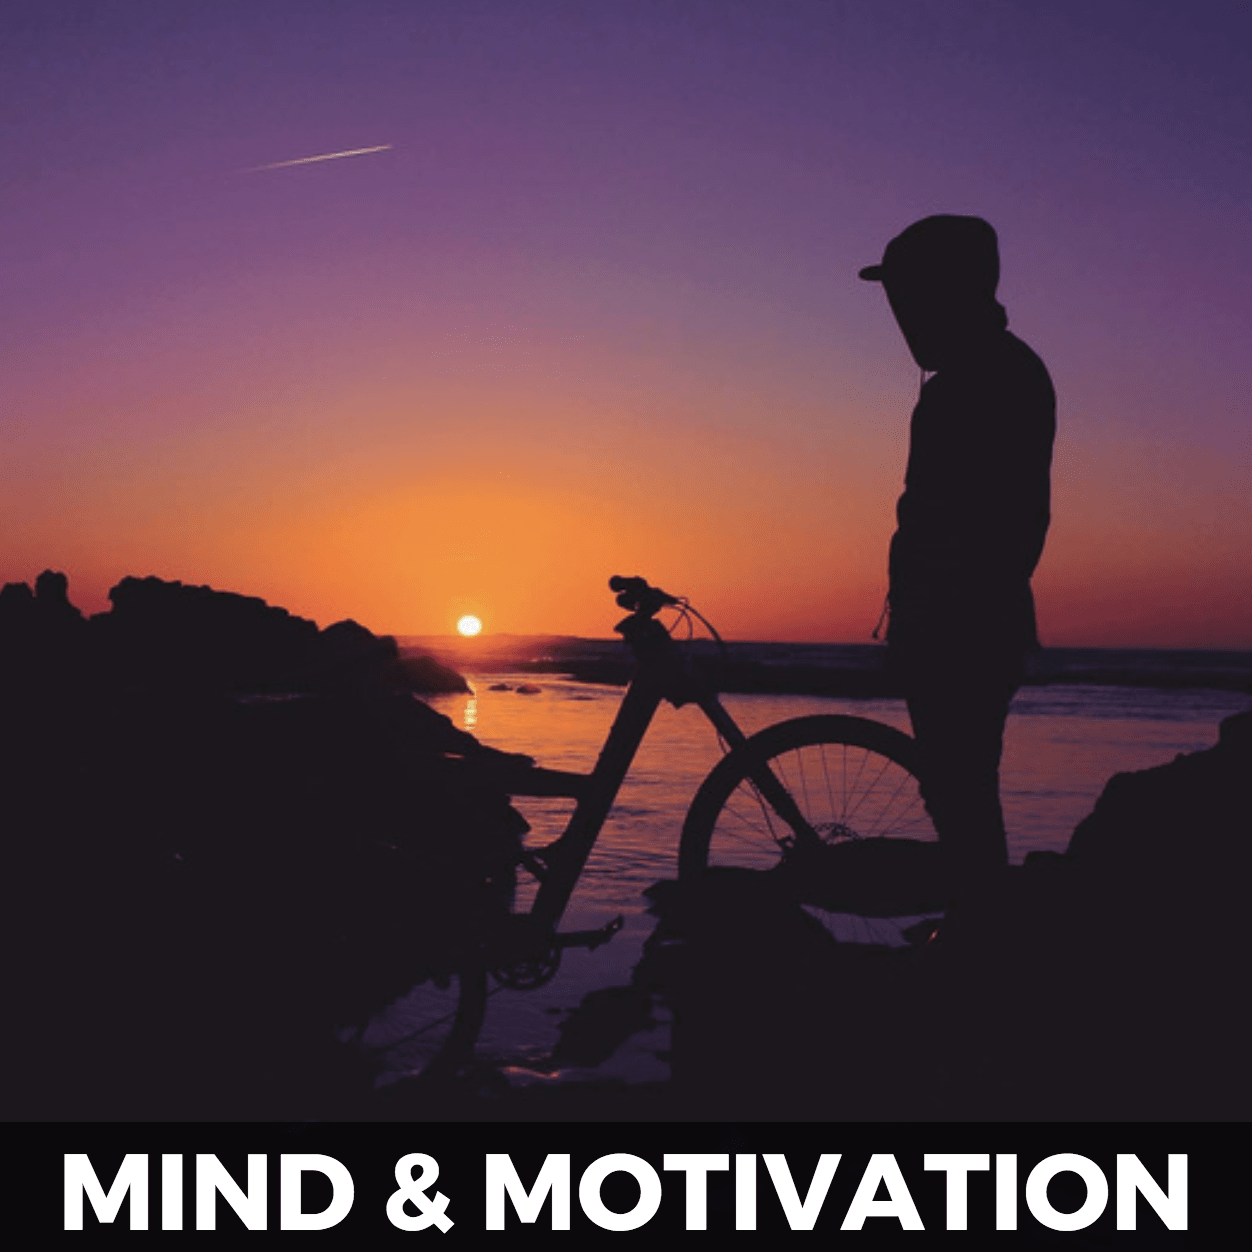 mind and motivation